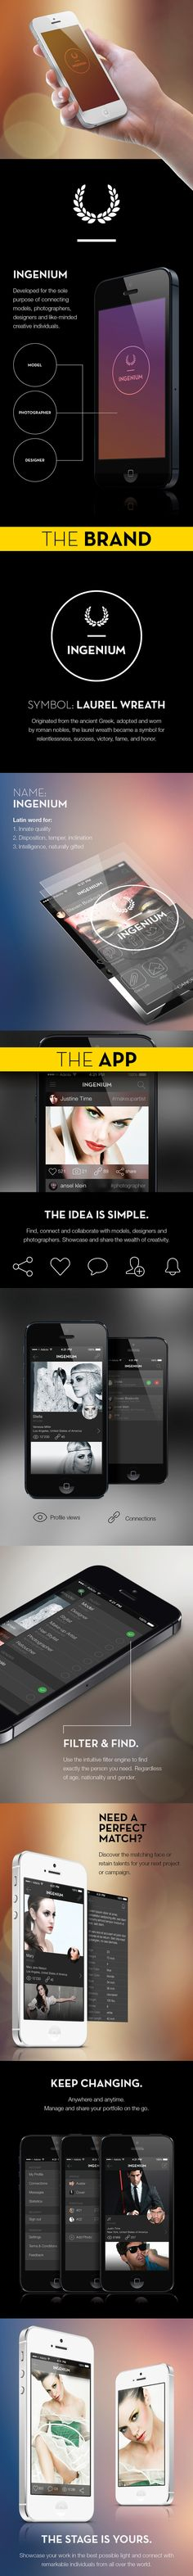 we share Best Mobile UI Design Inspiration UI and UX design plays a huge role in whether people adopt your mobile apps. Mobile Ui Design, App Design, Best Mobile, Mobile App, Ui Design Inspiration, User Experience Design, Application Design, User Interface Design, Interactive Design